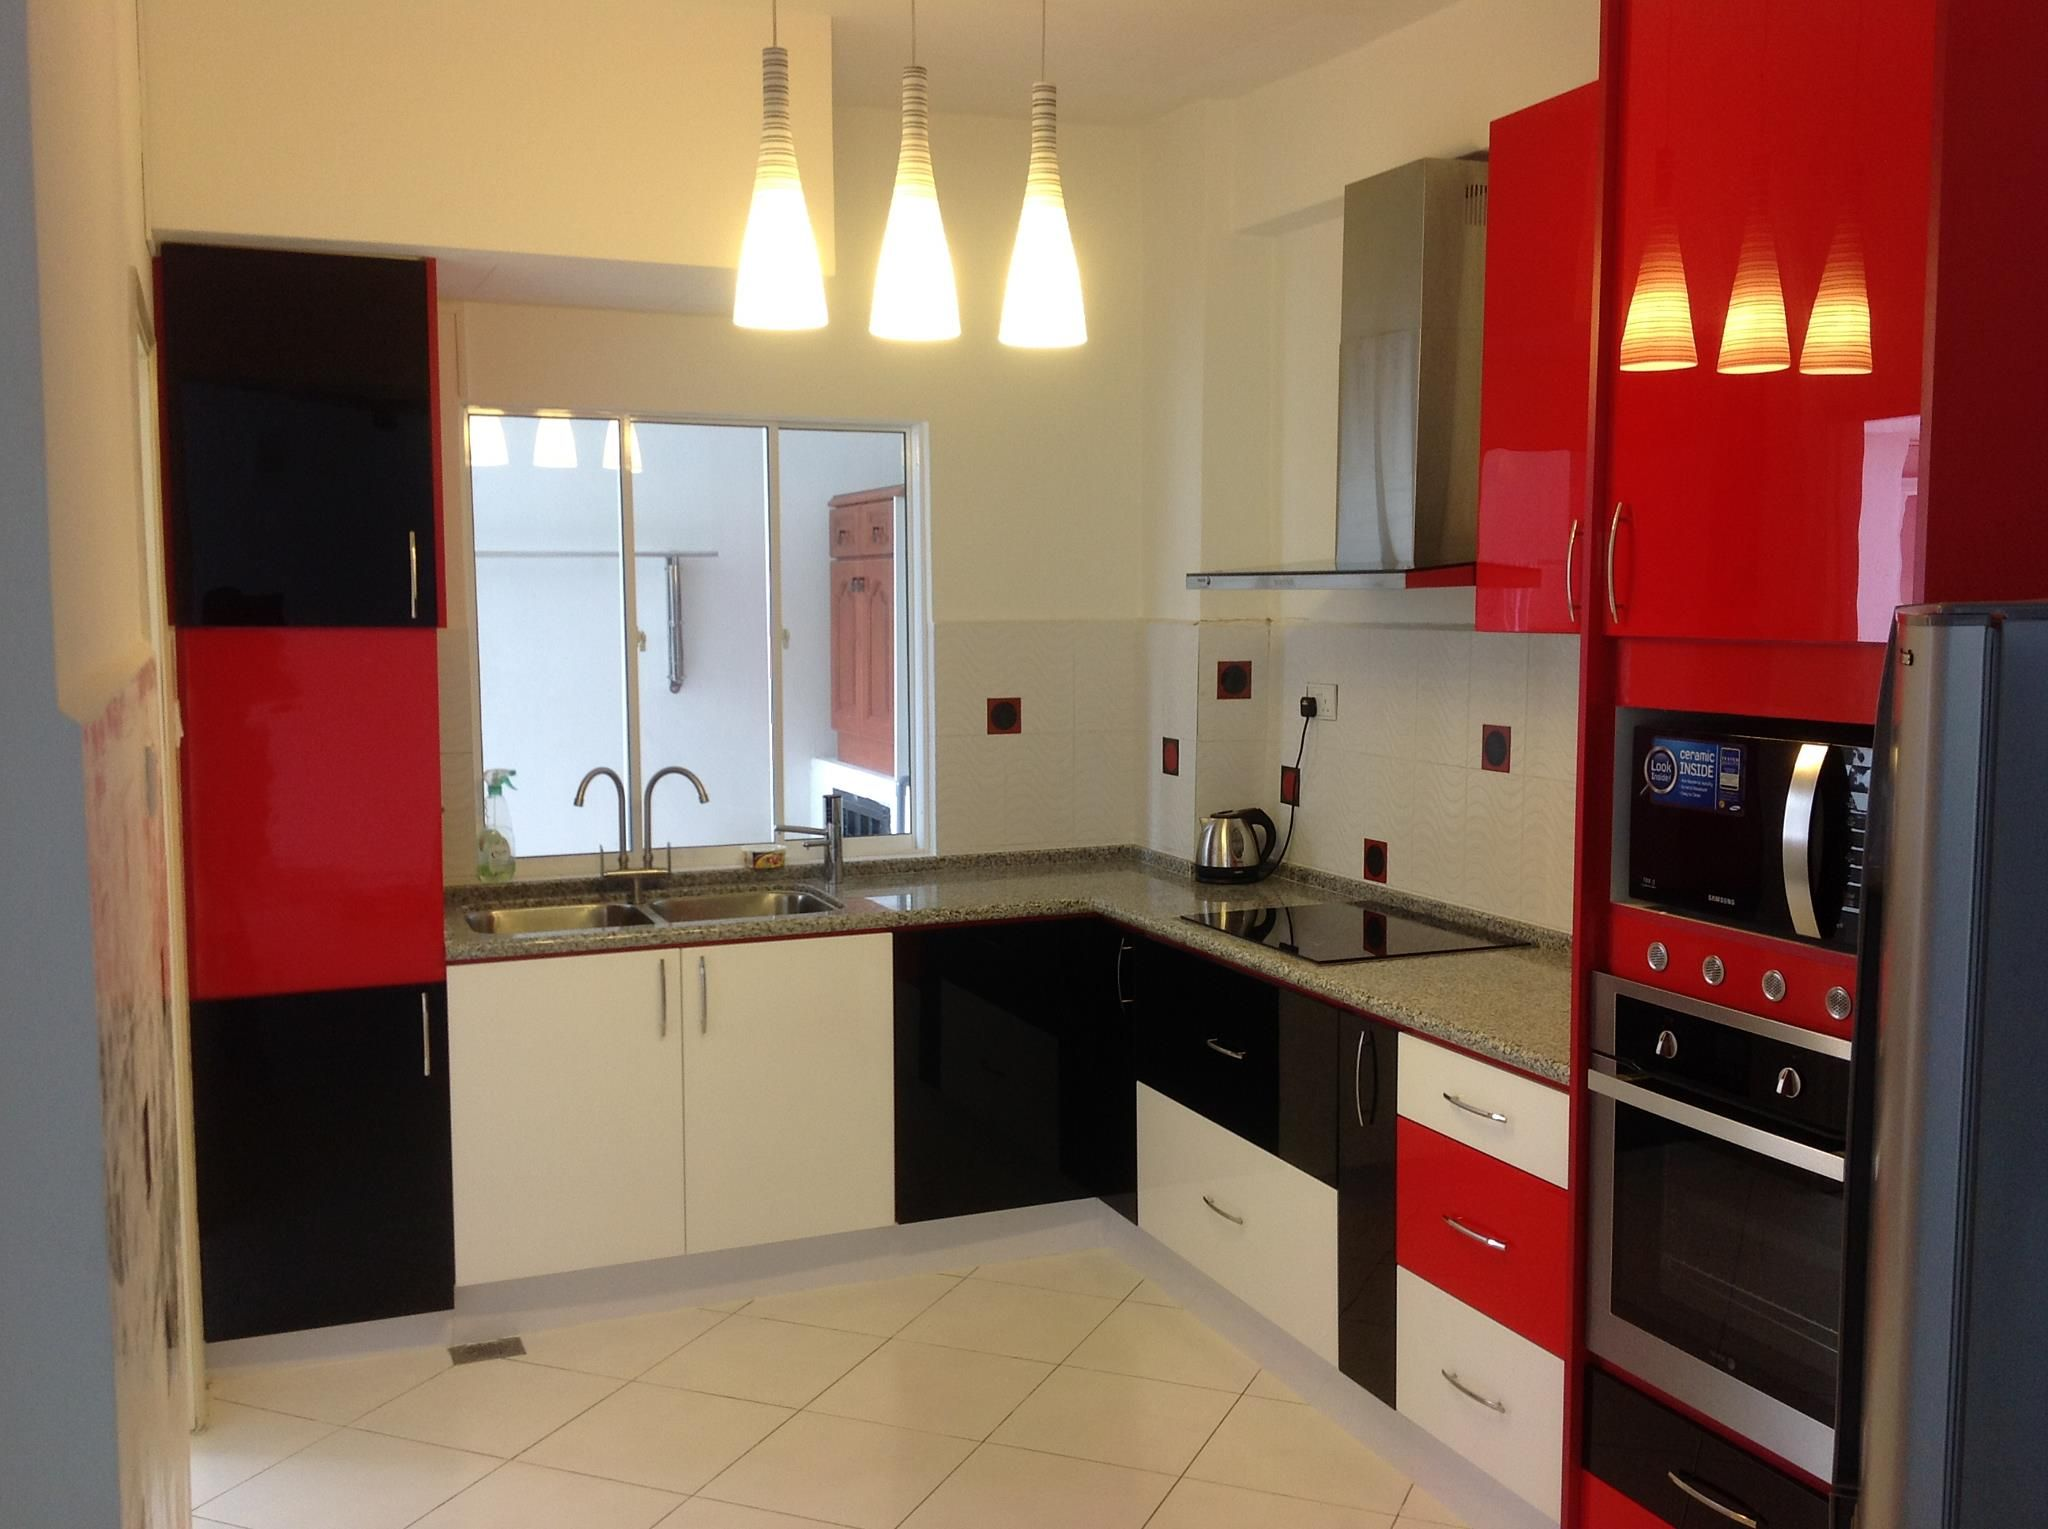 Kitchen Cabinet At Bukit Antarabangsa Ampang Red Black White Acrylic Materia Red And White Kitchen Cabinets Kitchen Cabinets Kitchen Interior Design Modern